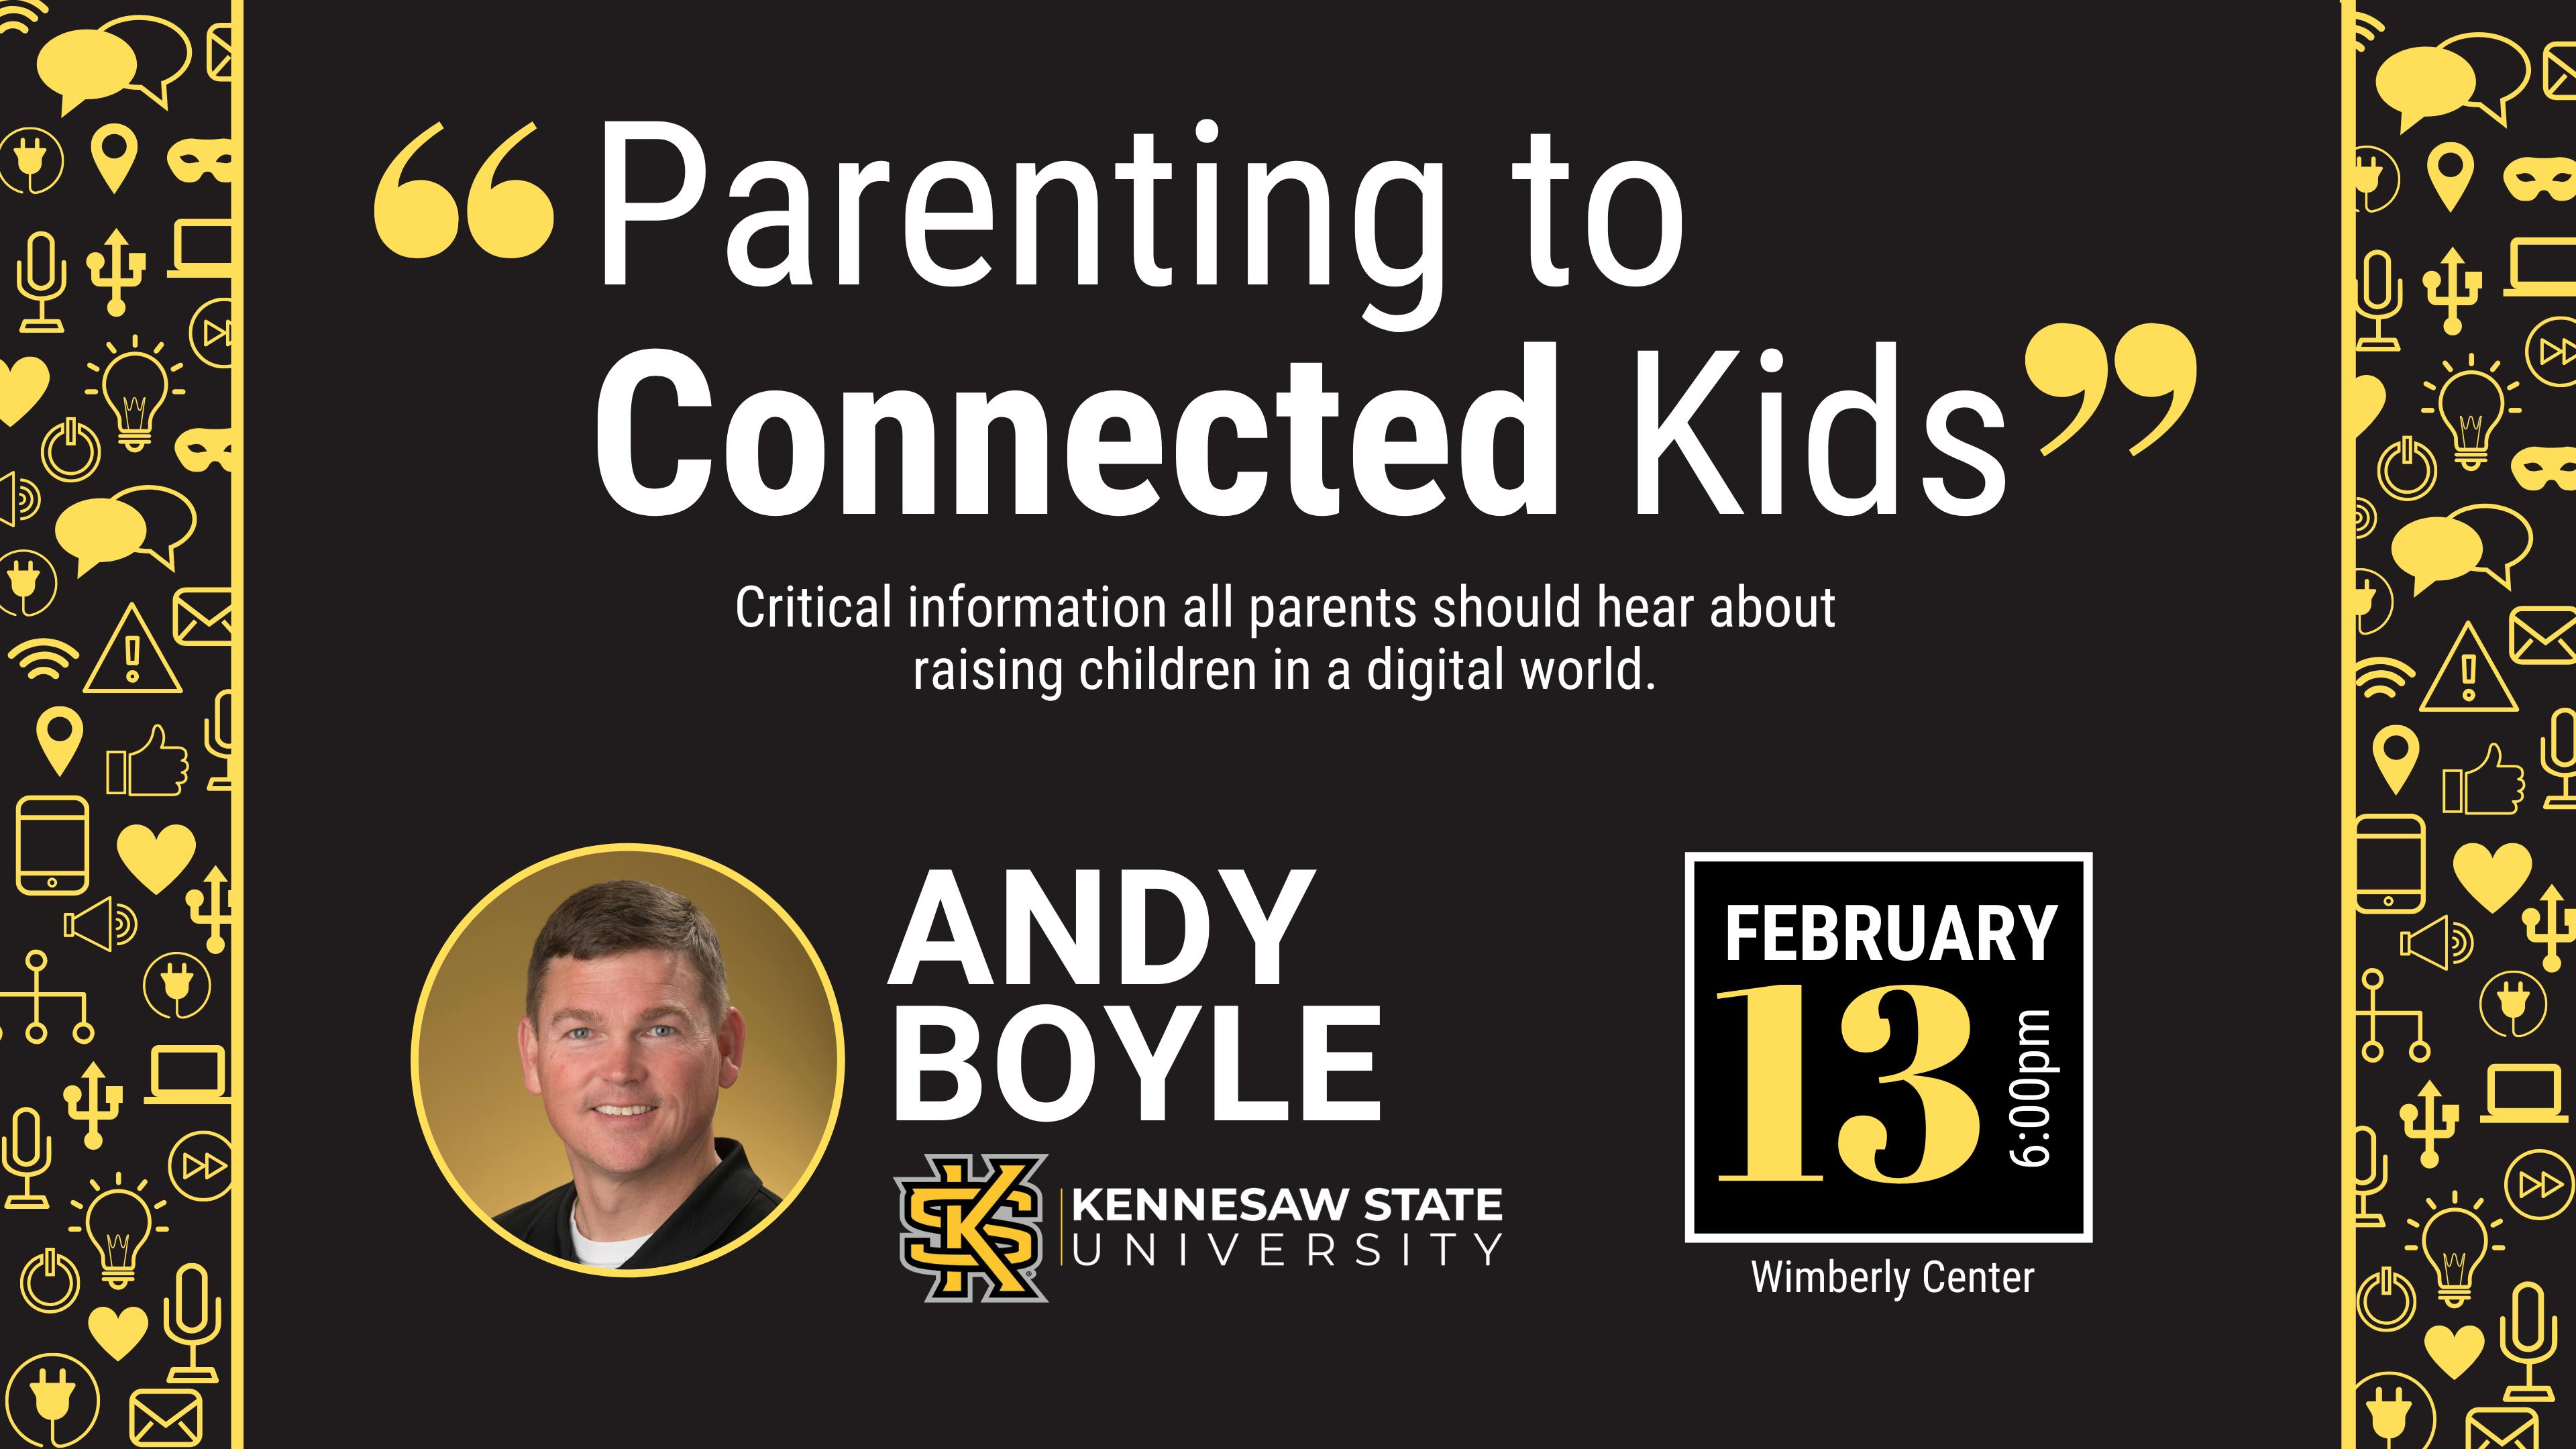 Parenting to Connected Kids - Andy Boyle